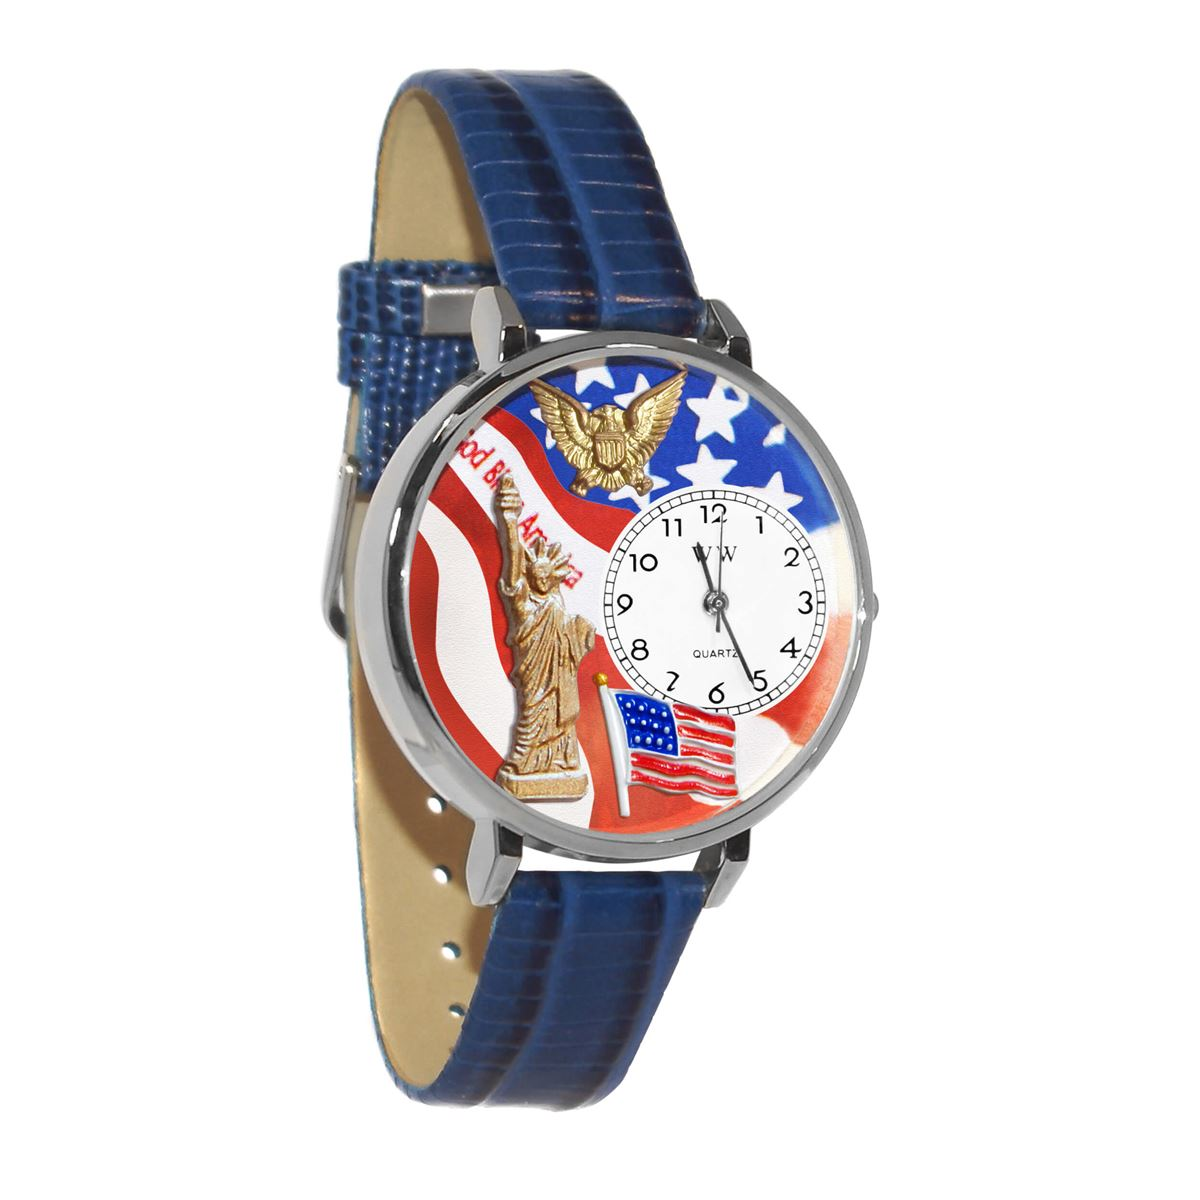 July 4th Patriotic Watch in Silver (Large)